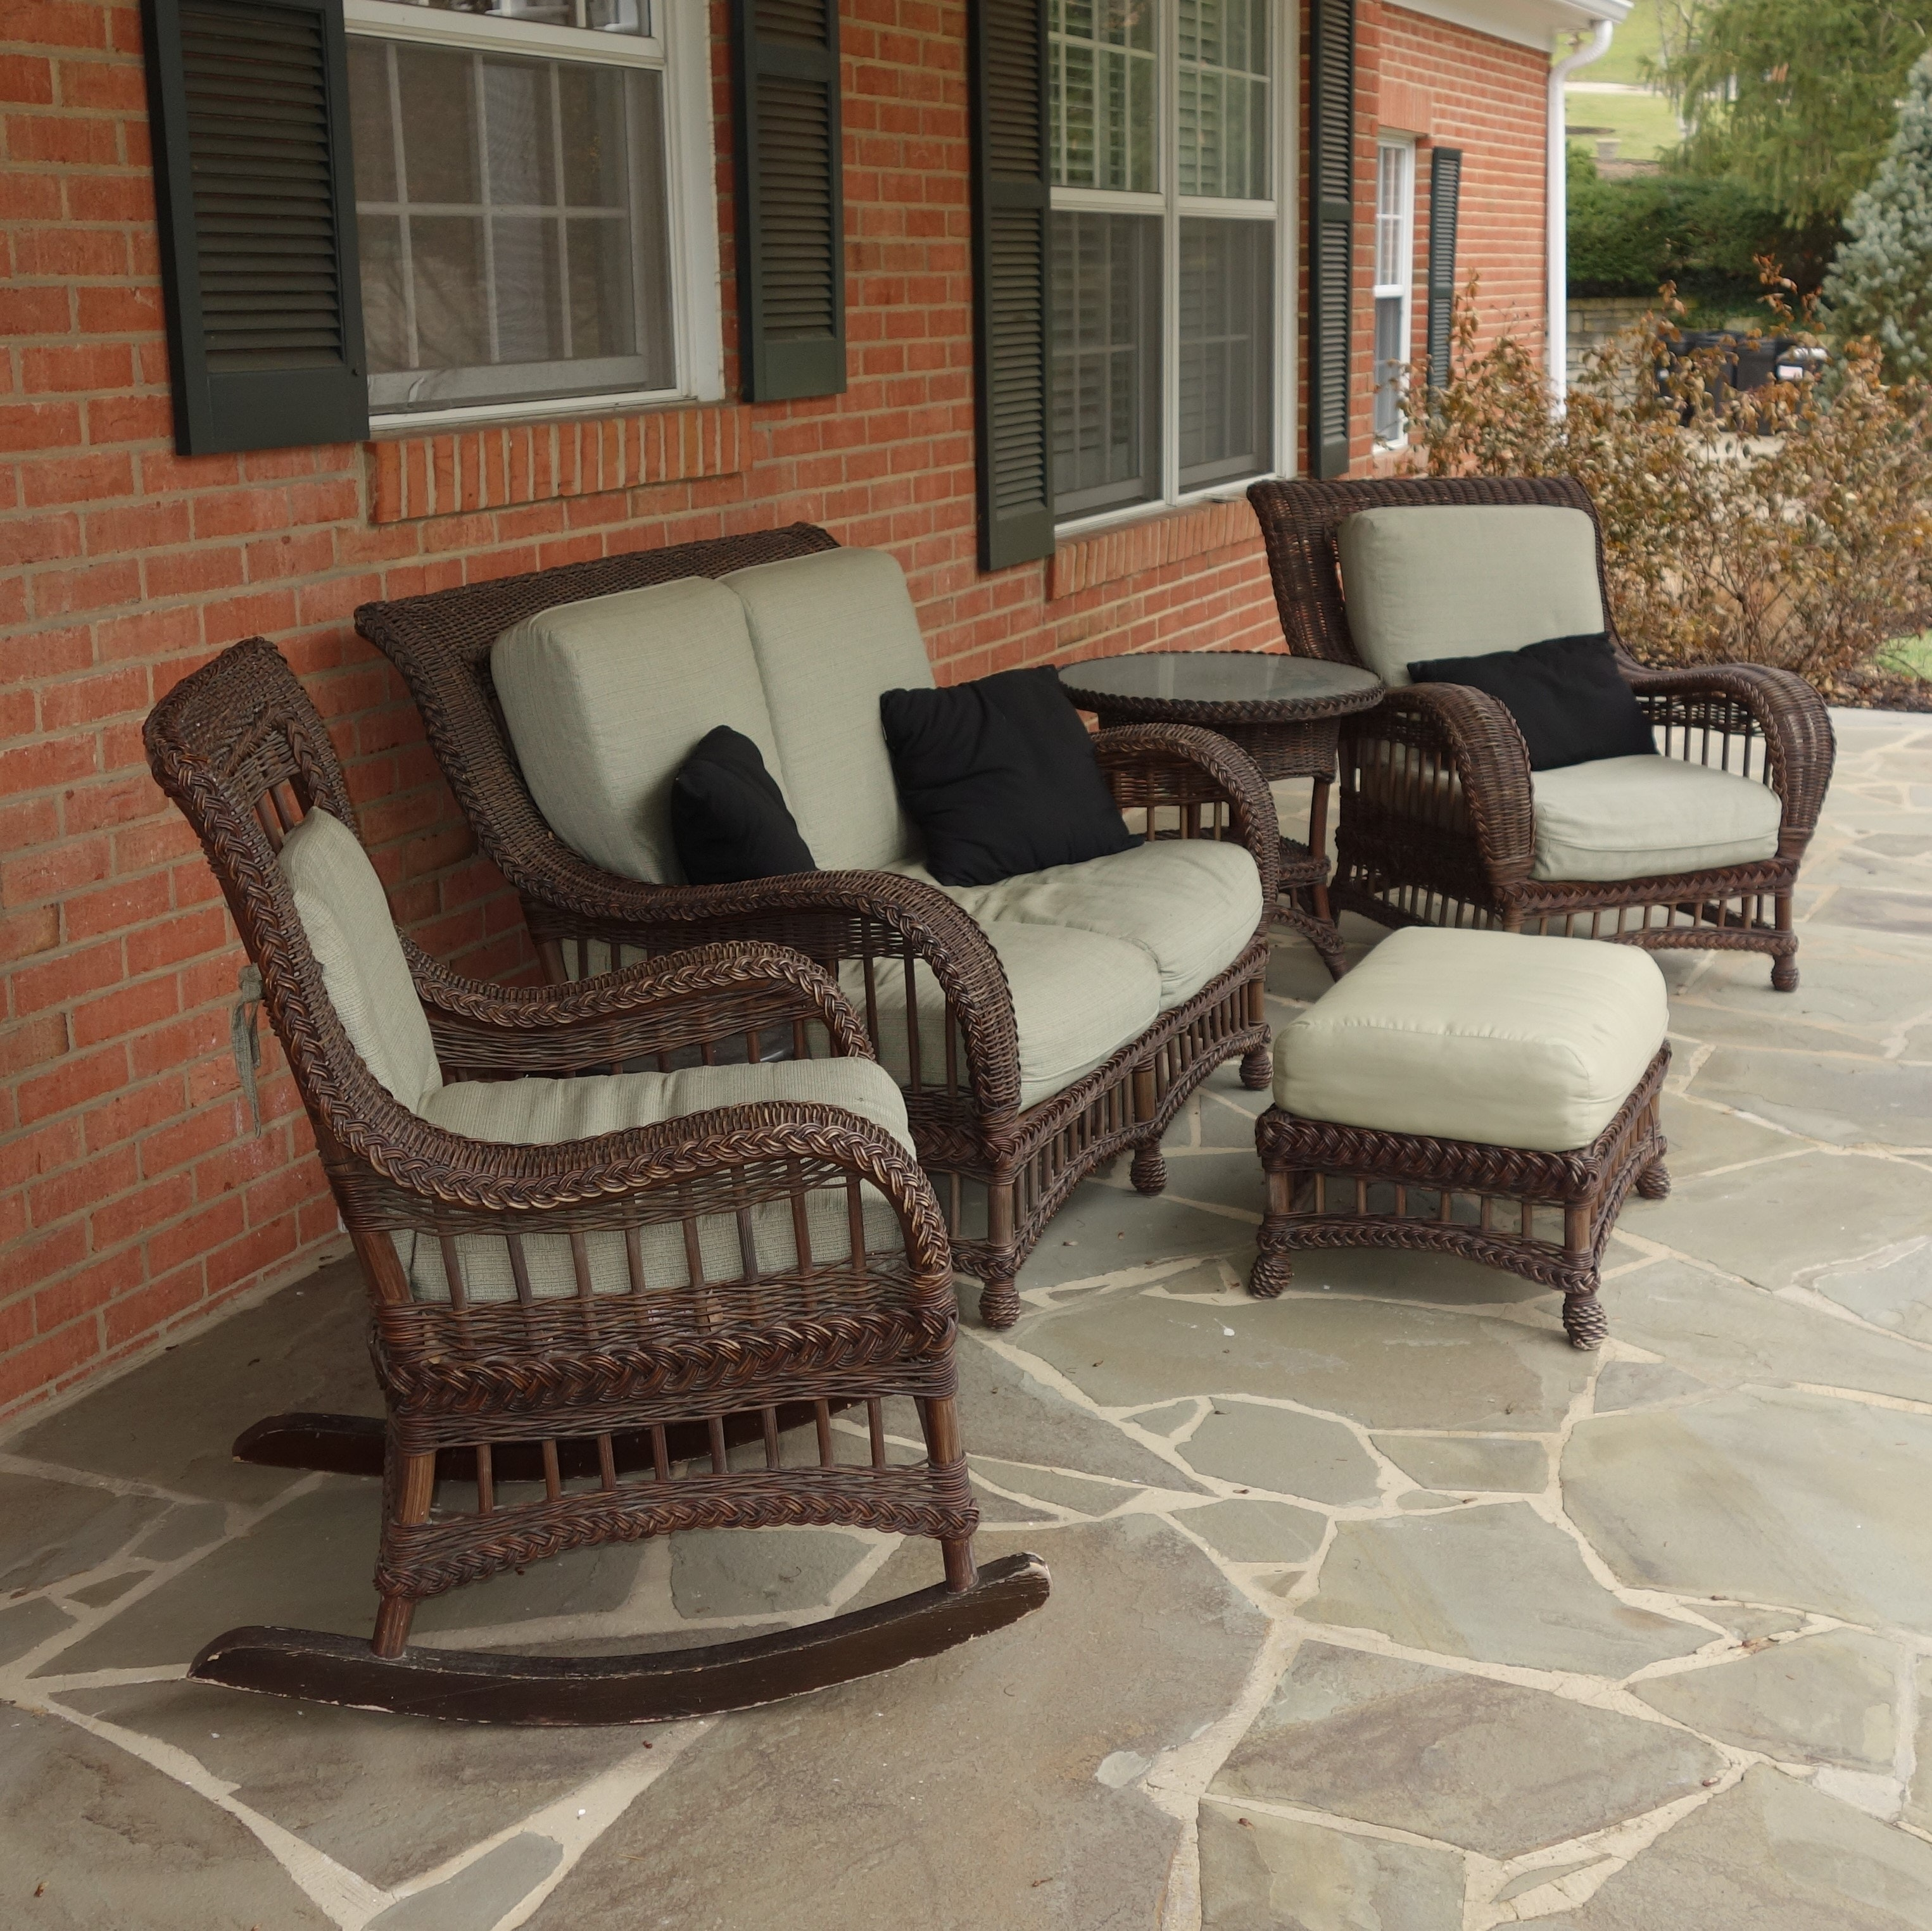 ethan allen outdoor wicker furniture set ebth rh ebth com ethan allen lawn furniture ethan allen patio furniture cushions